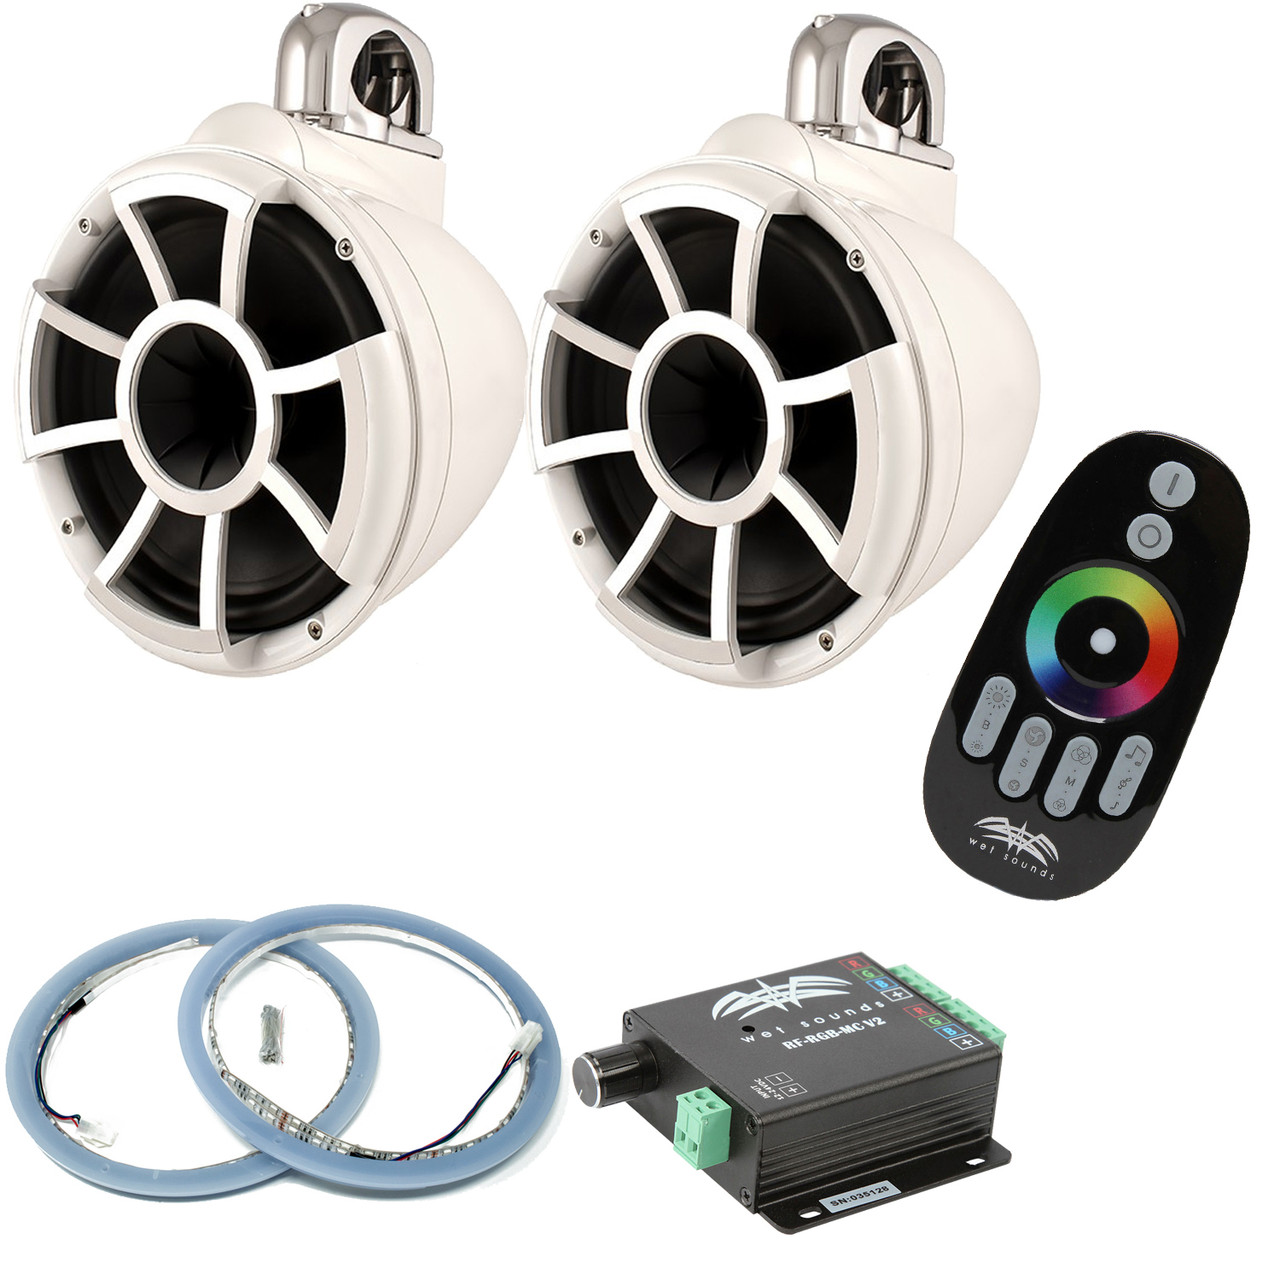 wet sounds rev10w fc fixed clamp tower speakers rgb led rings wet sounds rev10w fc fixed clamp tower speakers rgb led rings rf rgb mcv2 rgb led controller white creative audio